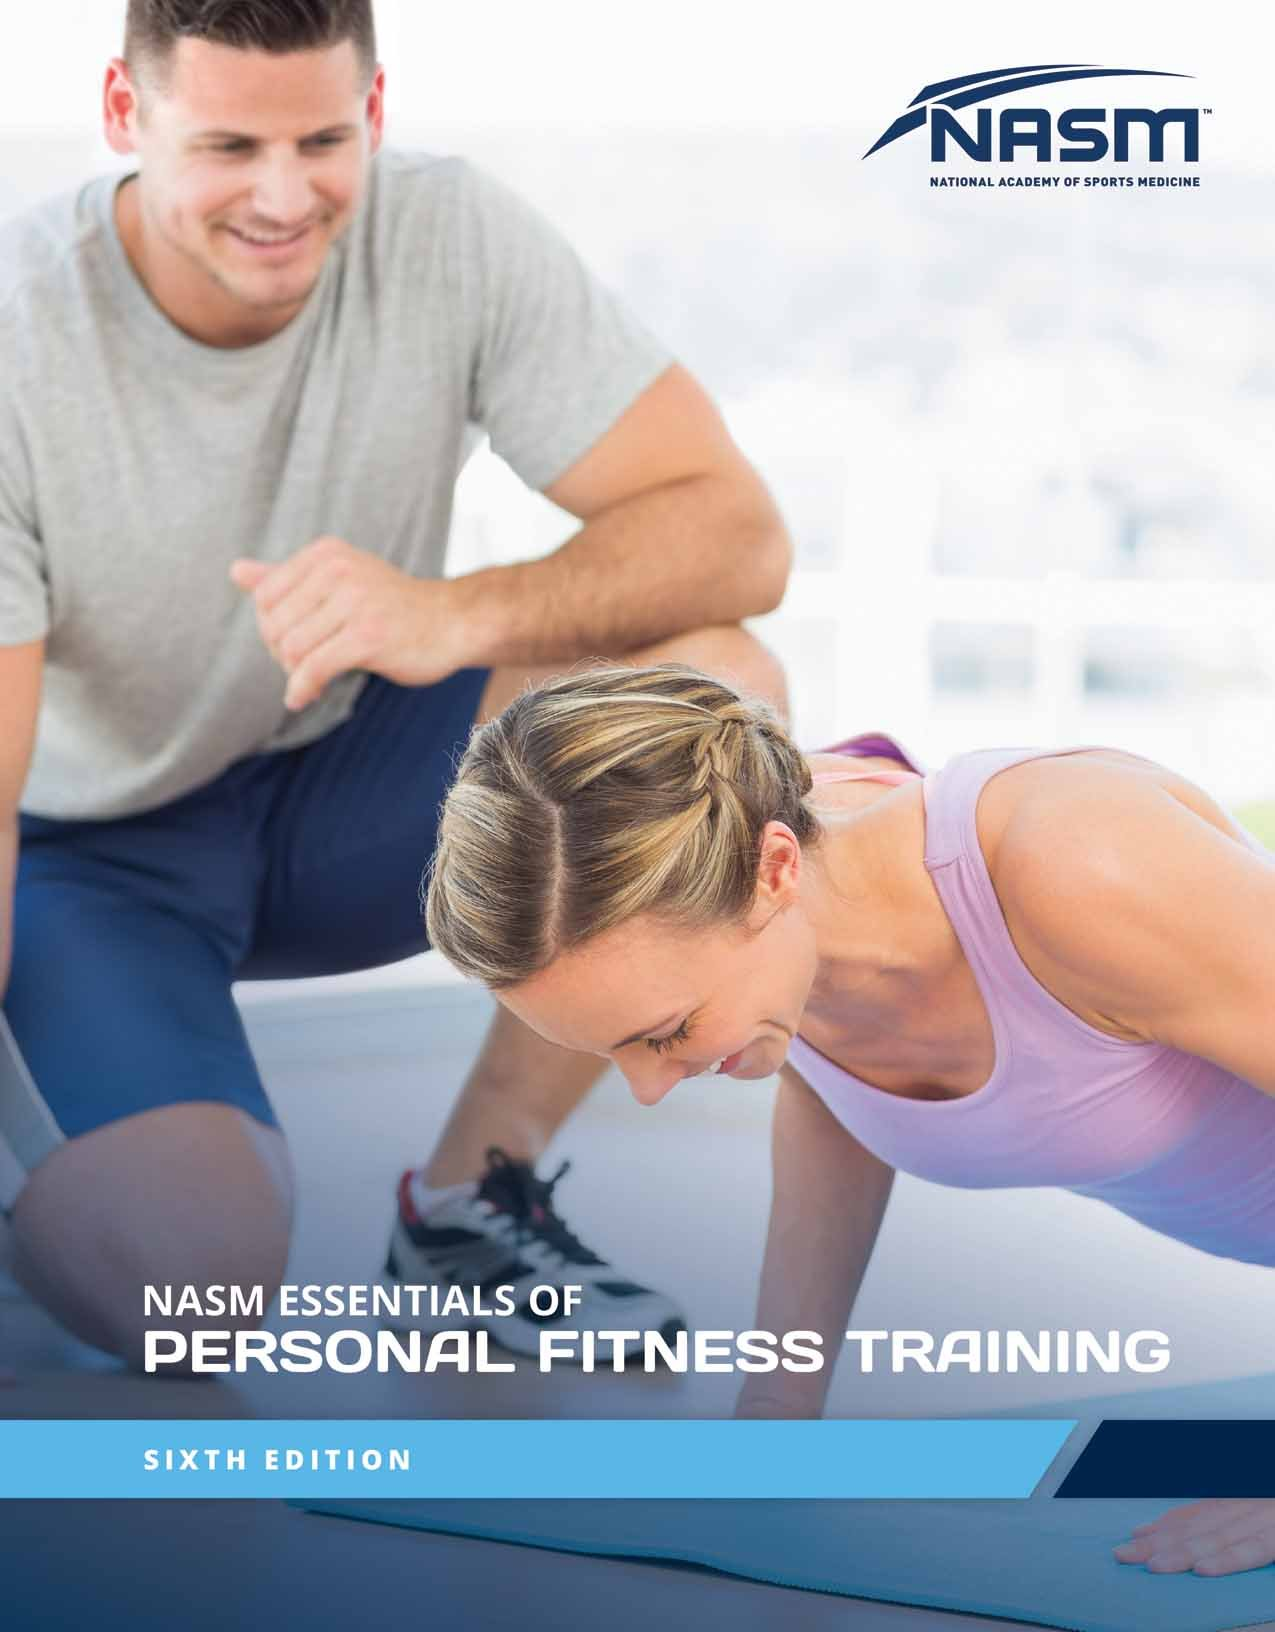 NASM Essentials Of Personal Fitness Training: Amazon.co.uk: National ...